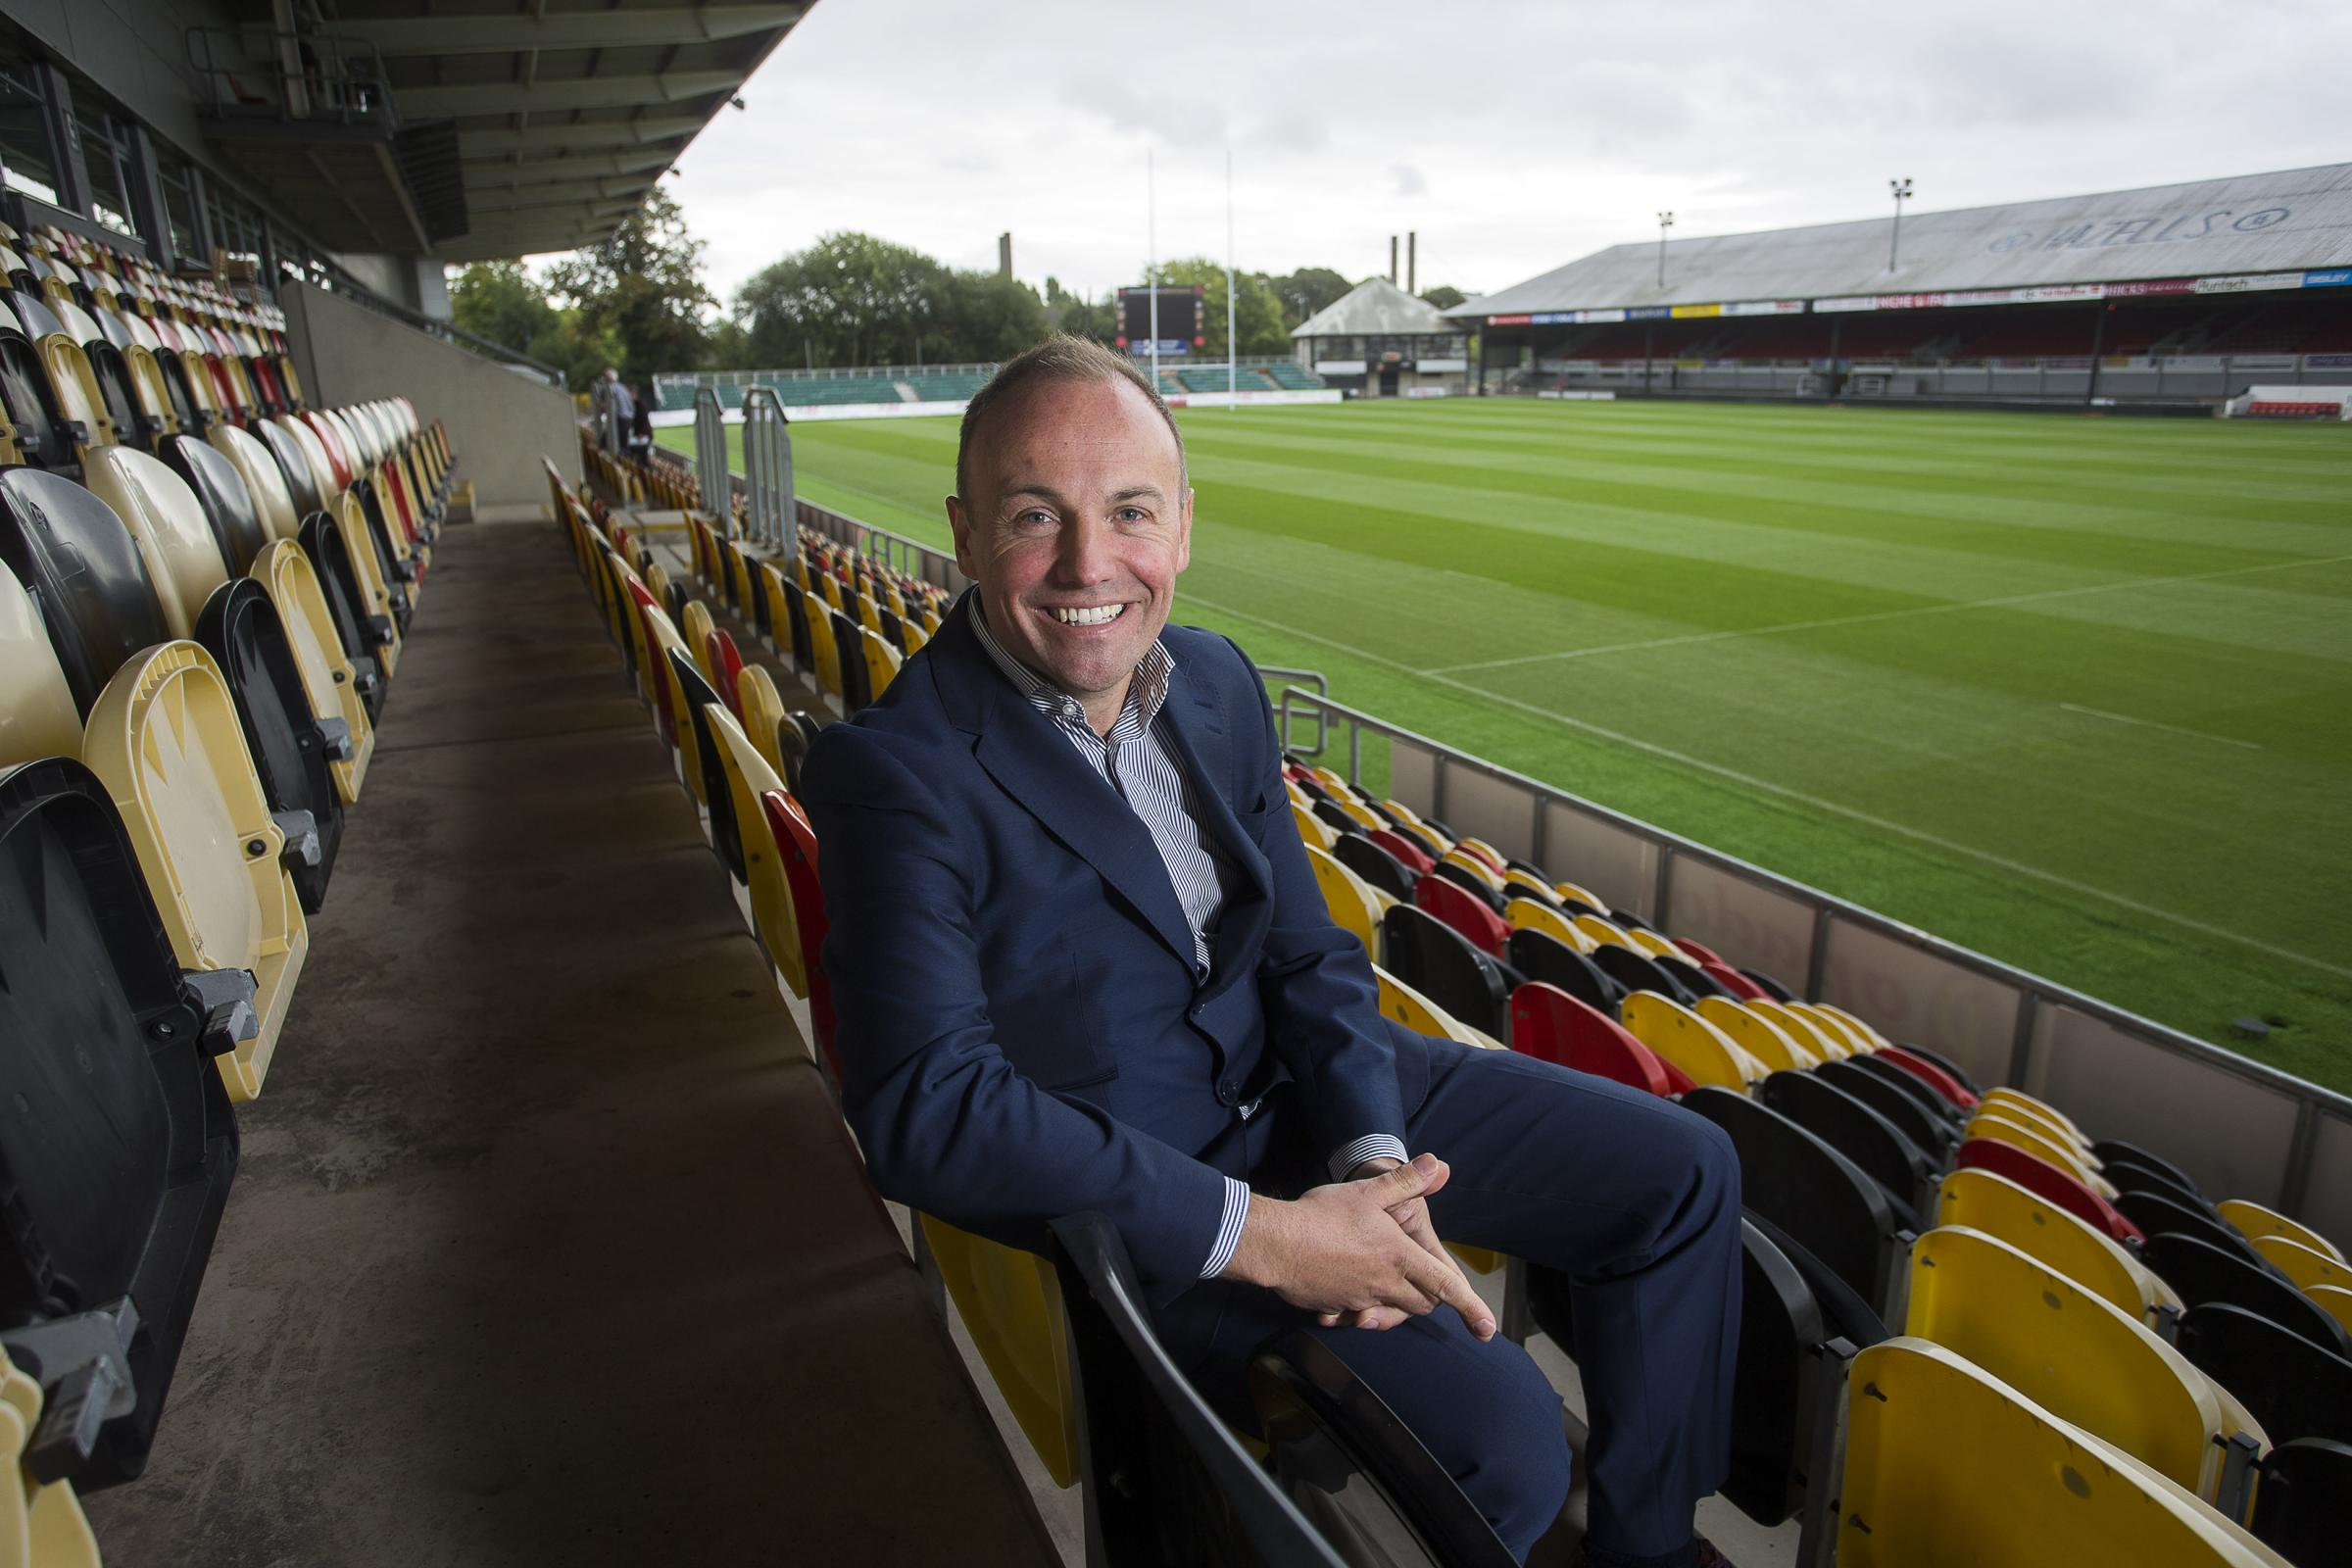 Dragons Chairman David Buttress